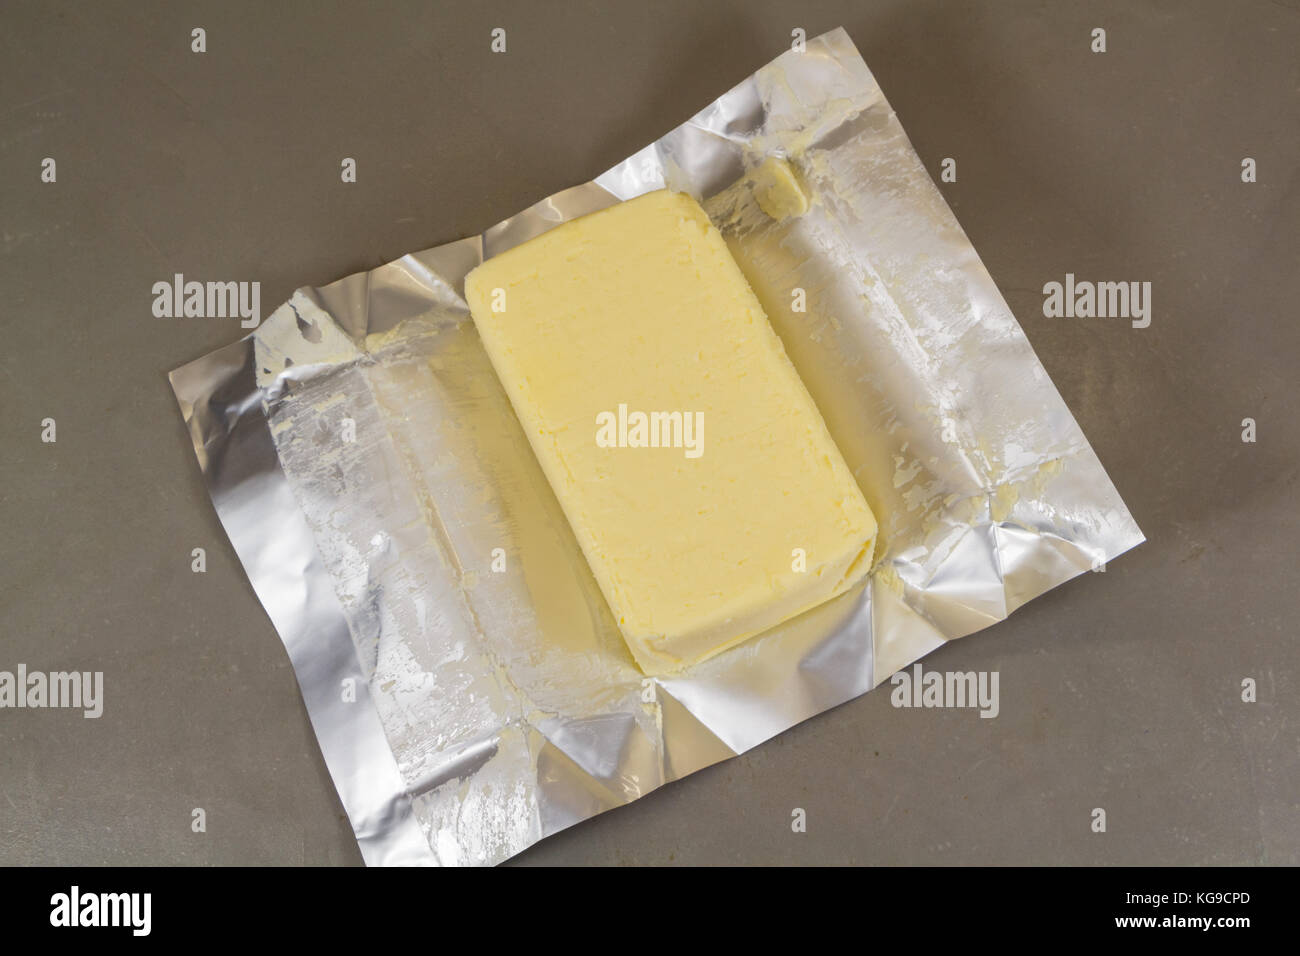 Pack of salted butter unwrapped - Stock Image